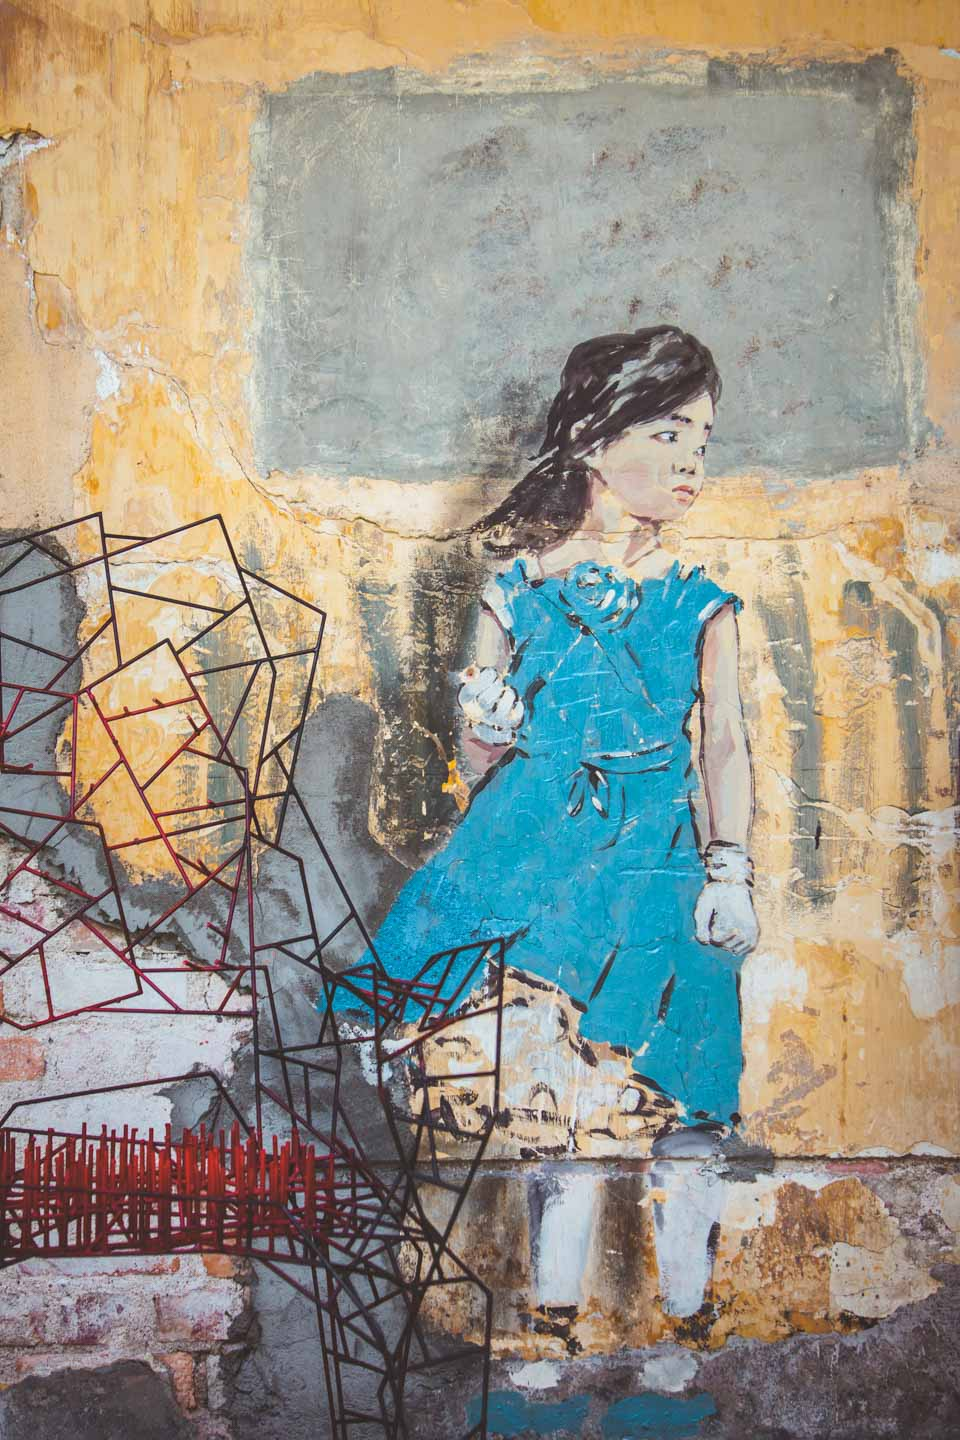 Thoughful girl, Art is Rubbish by Ernest Zacharevic